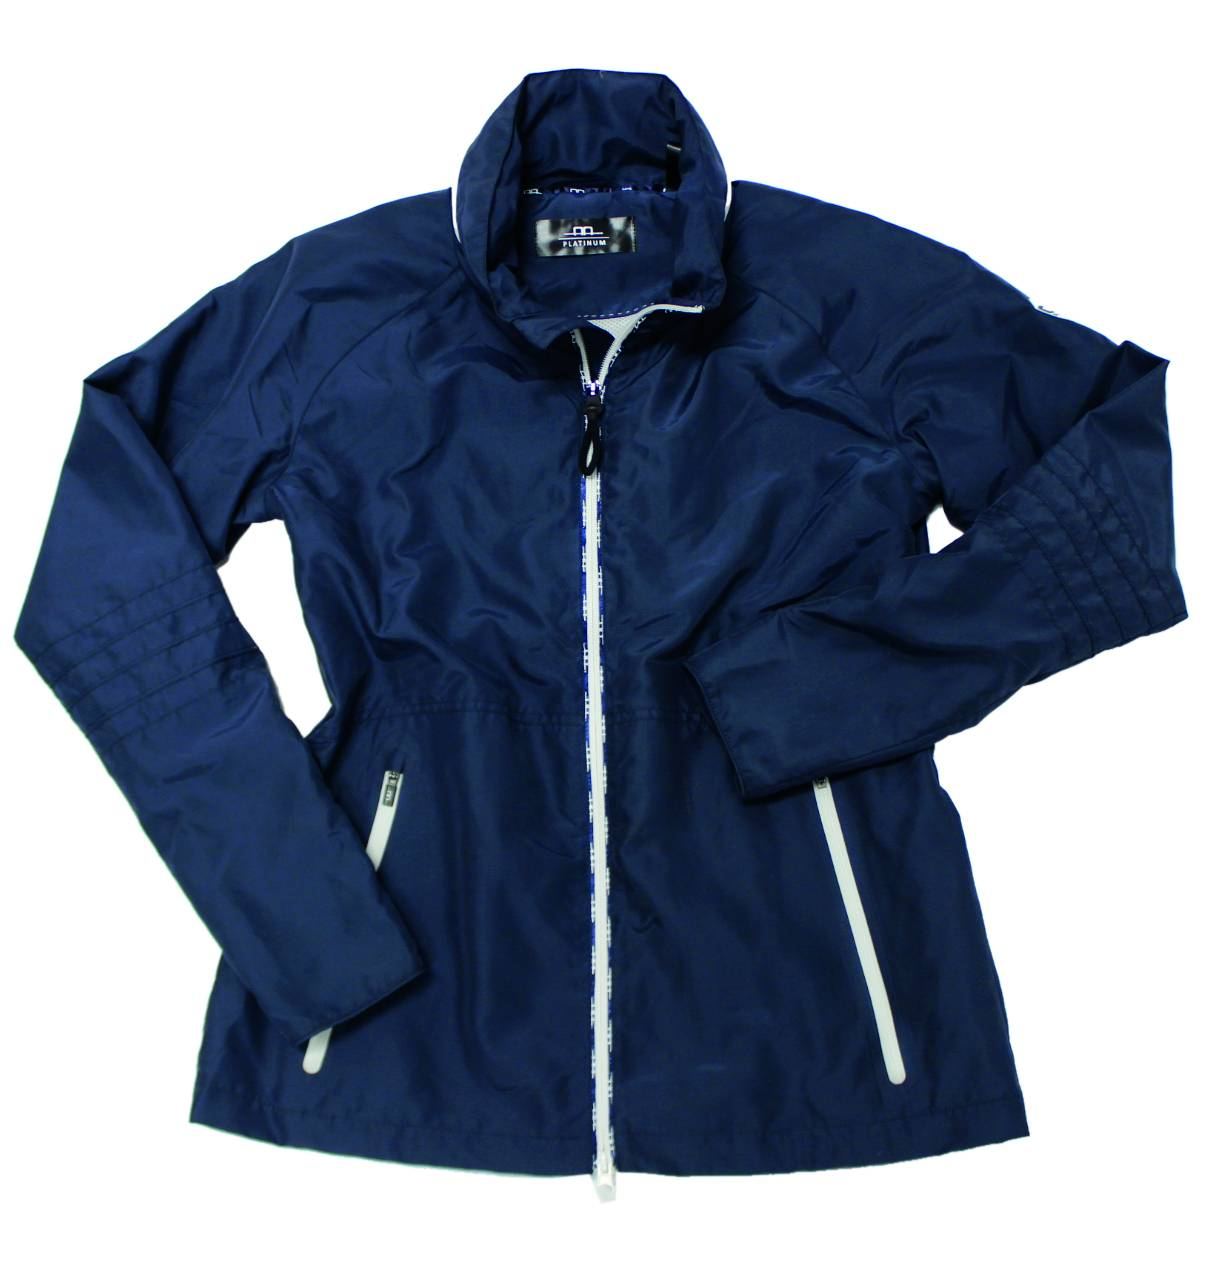 Alessandro Albanese Bosa Short Jacket Ladies